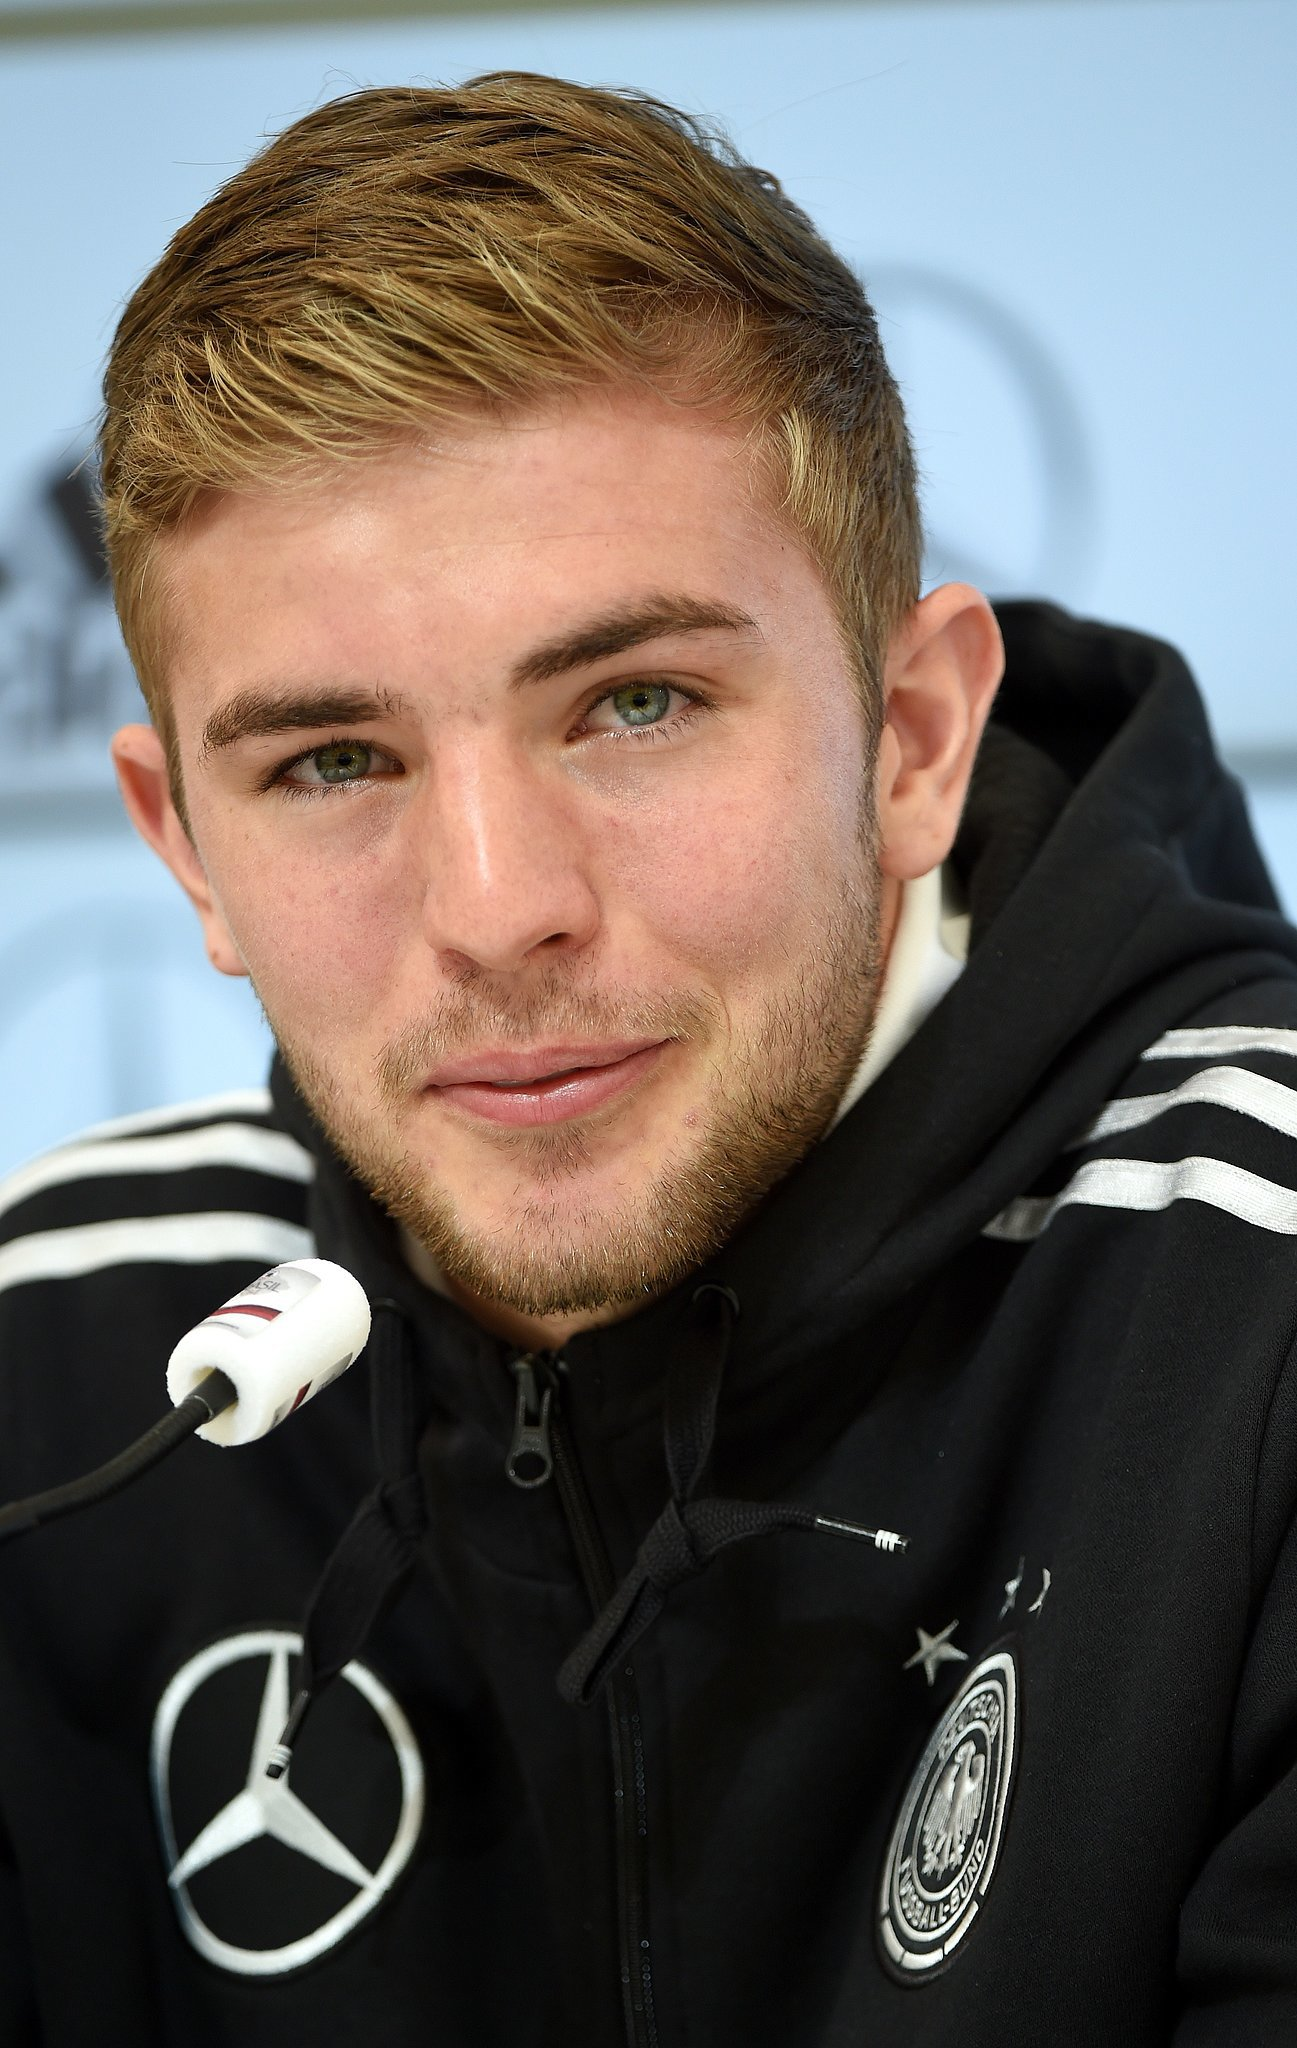 The 26-year old son of father (?) and mother(?), 190 cm tall Christoph Kramer in 2018 photo